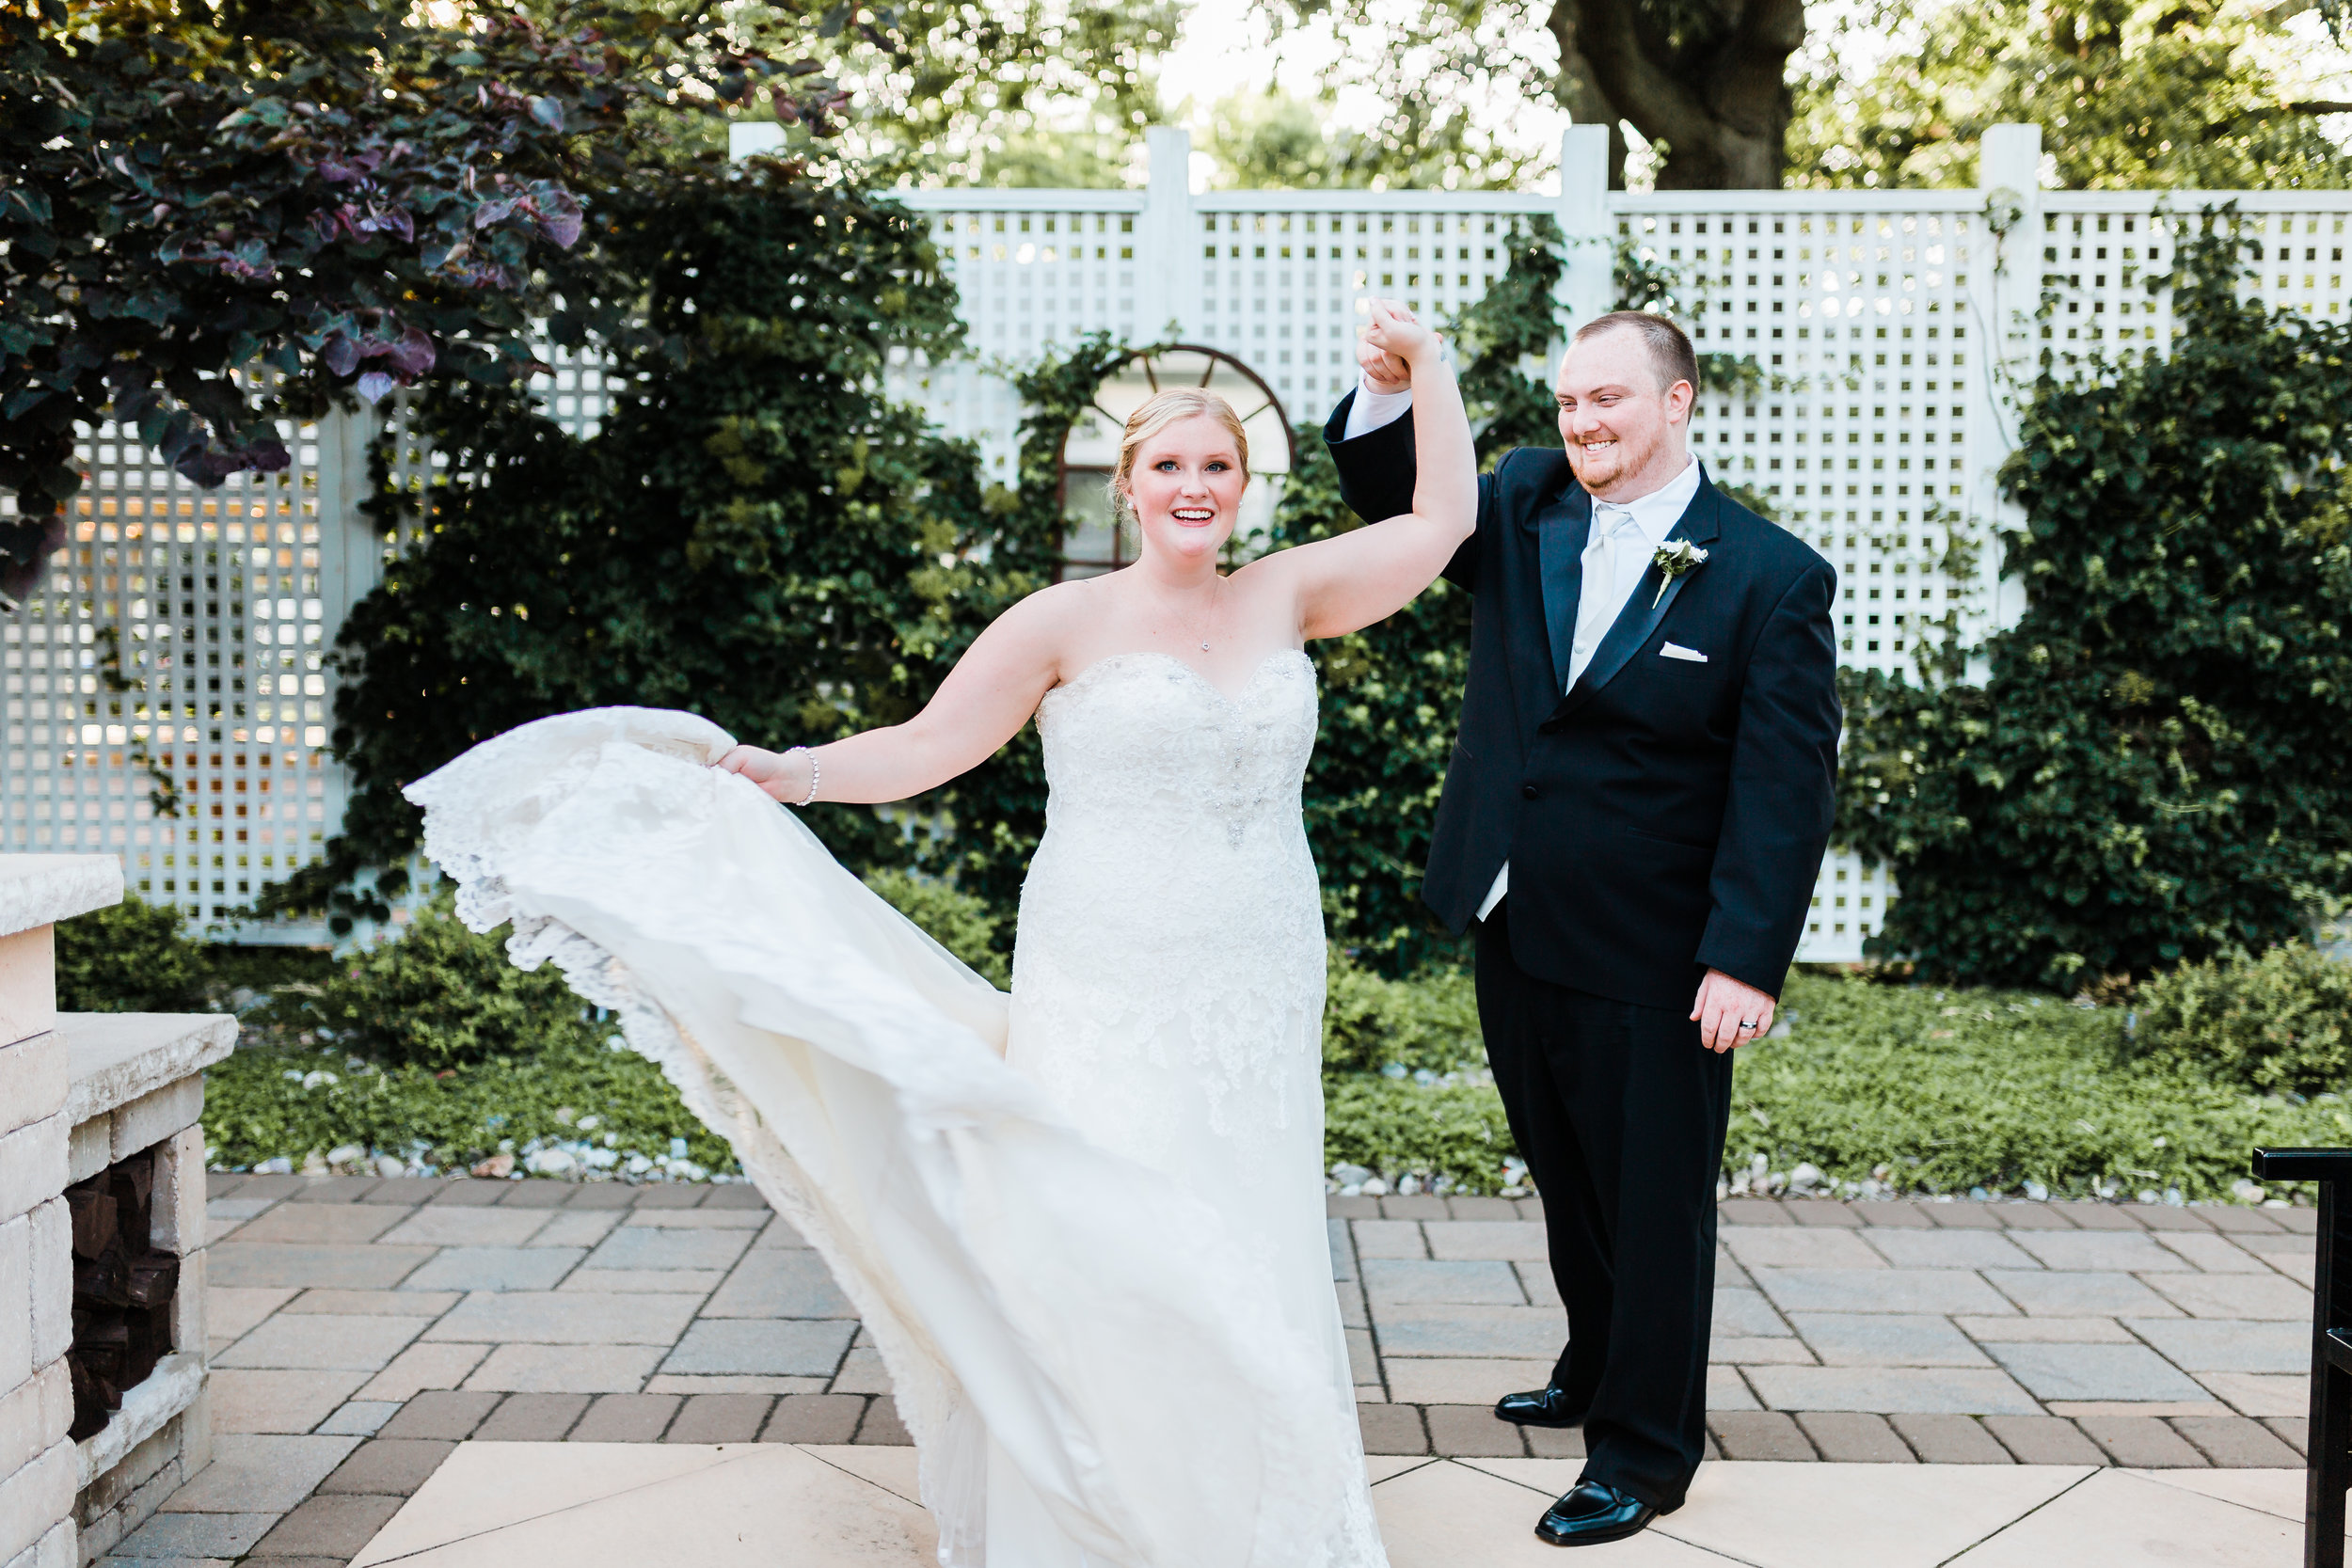 bride and groom dancing together - disney inspired wedding - red and black wedding - best md wedding photographer